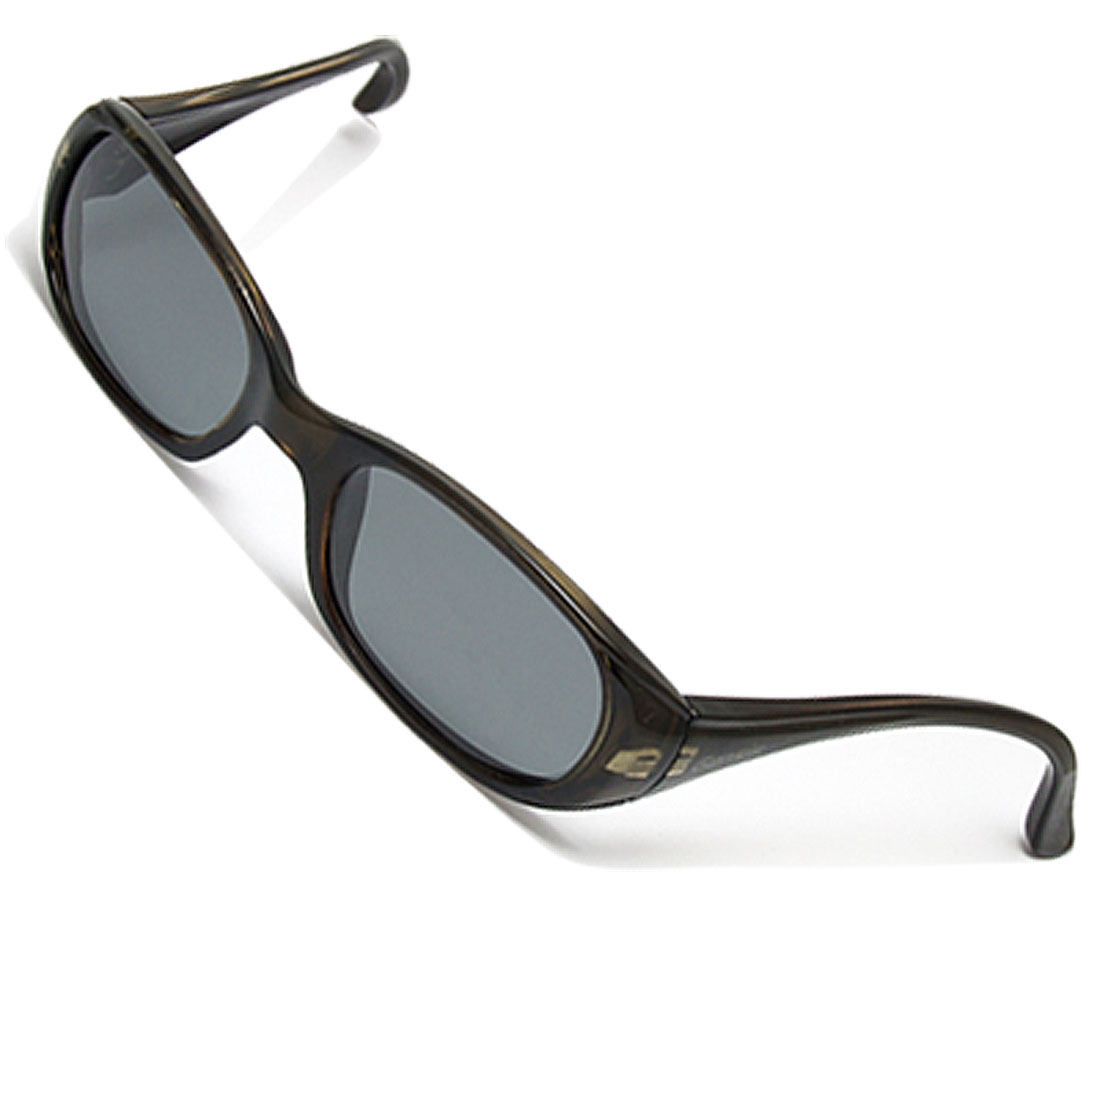 Oversized Arm Plastic Men's Travel Leisure Sunglasses